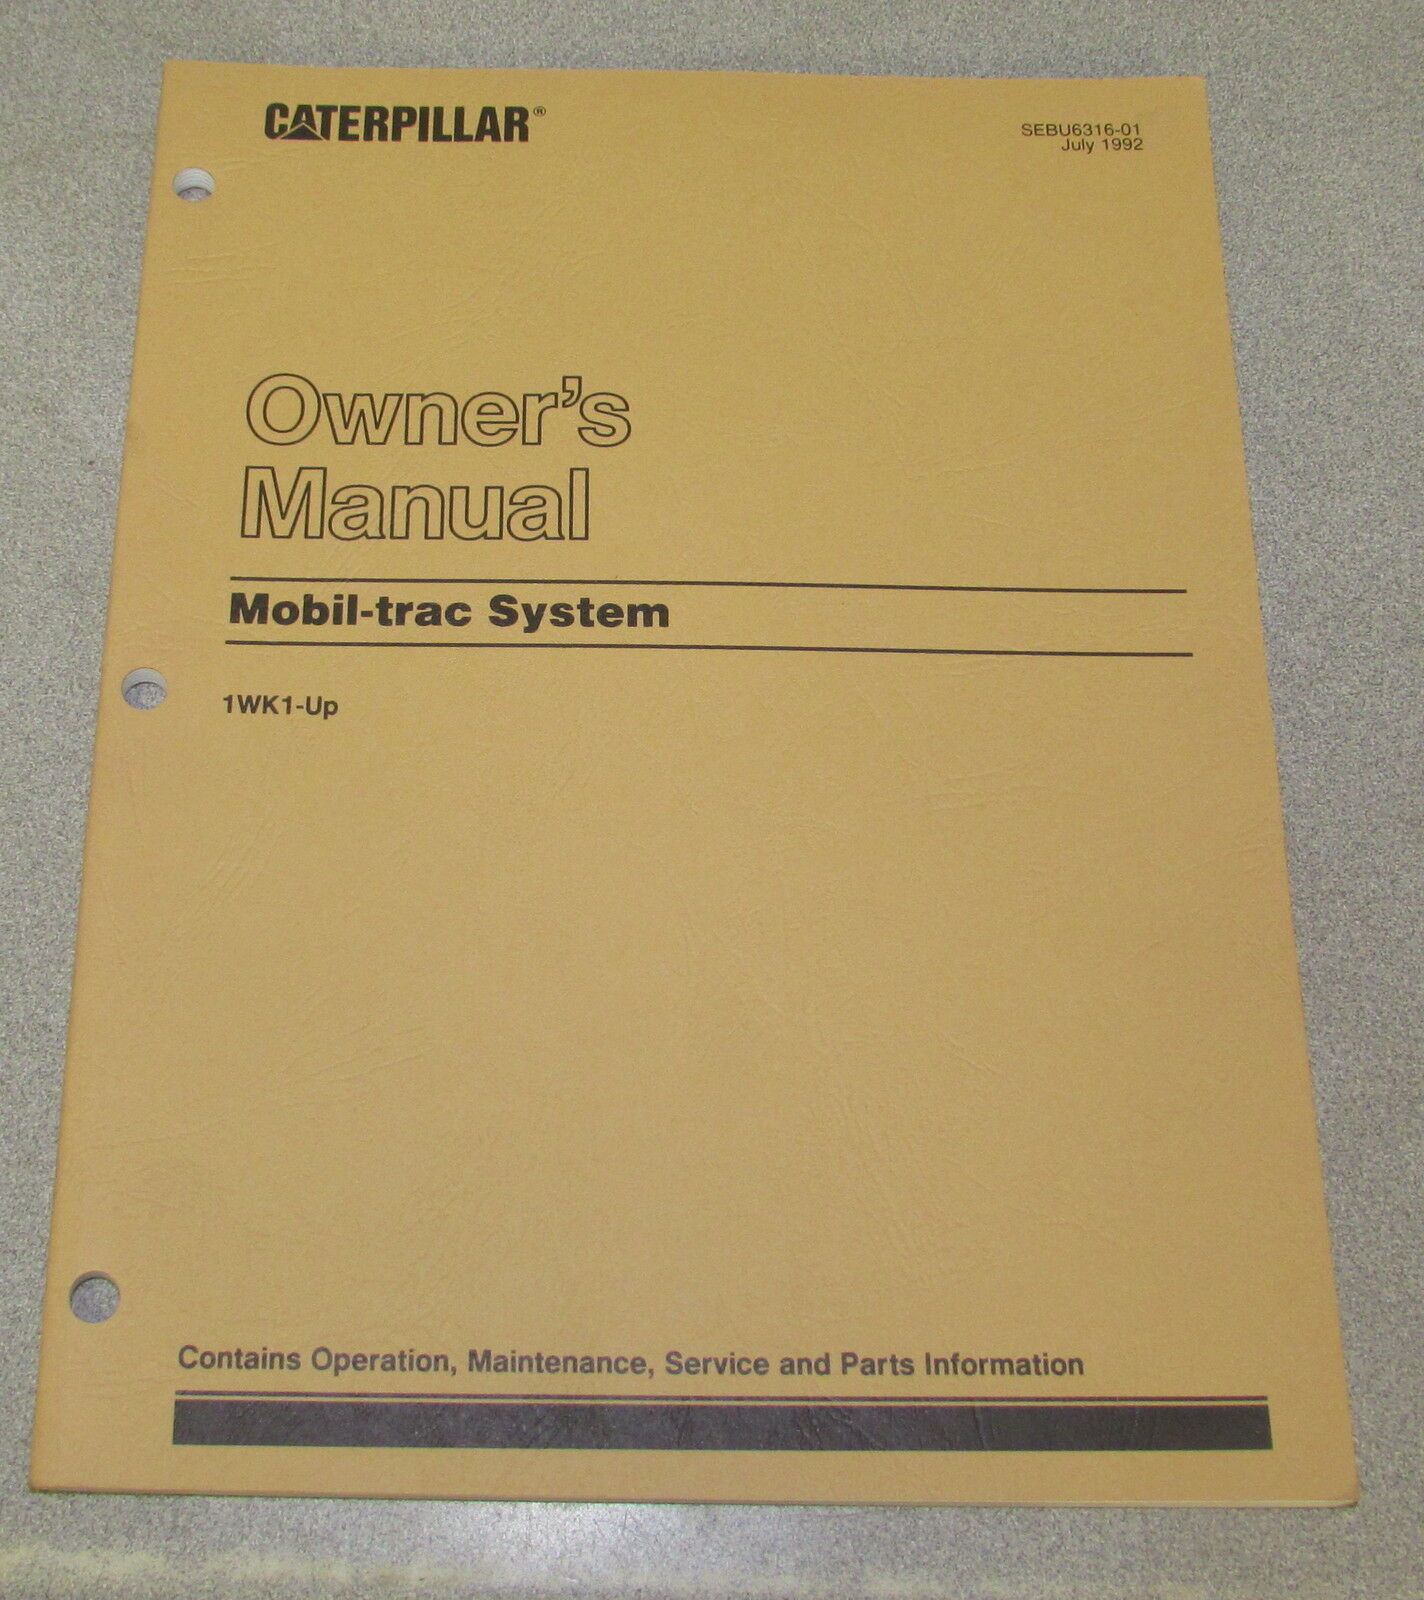 Caterpillar Cat Mobile-Trac System Operation Maintenance Service Parts  Manual 1 of 1Only 1 available ...